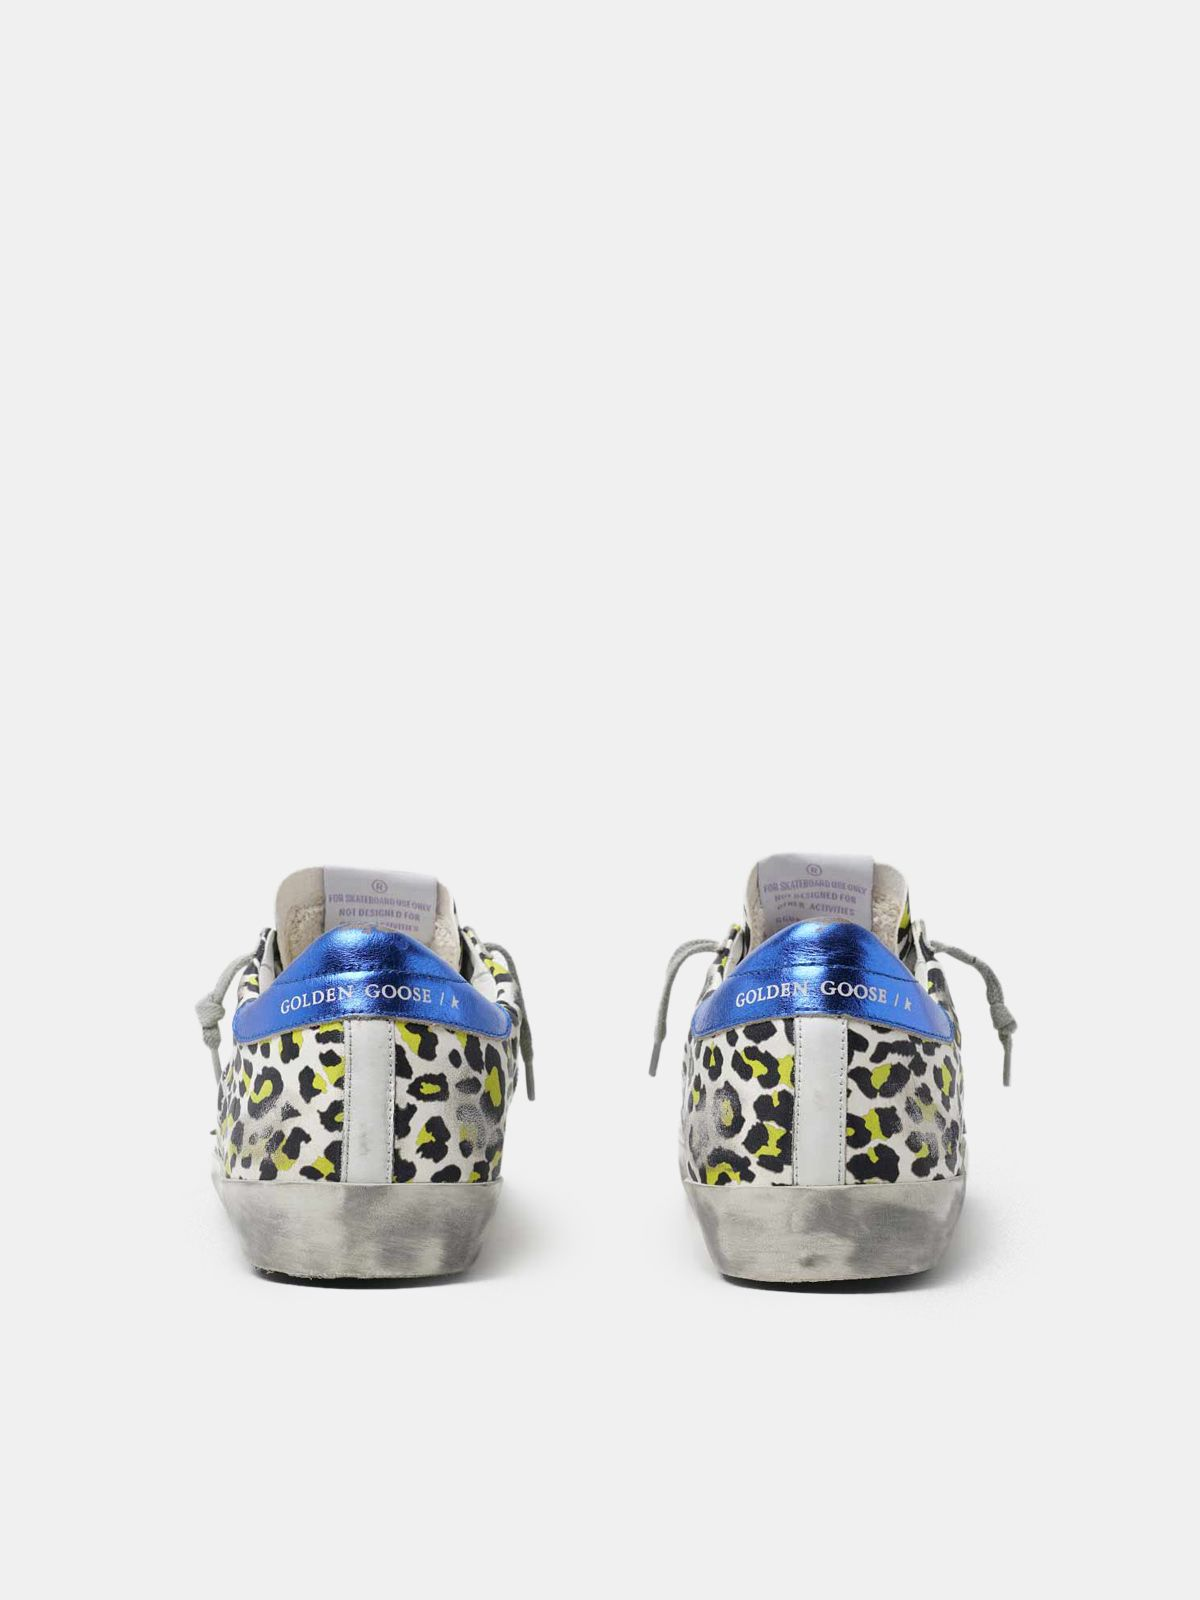 Golden Goose - Sneakers Super-Star animalier con talloncino blu laminato in